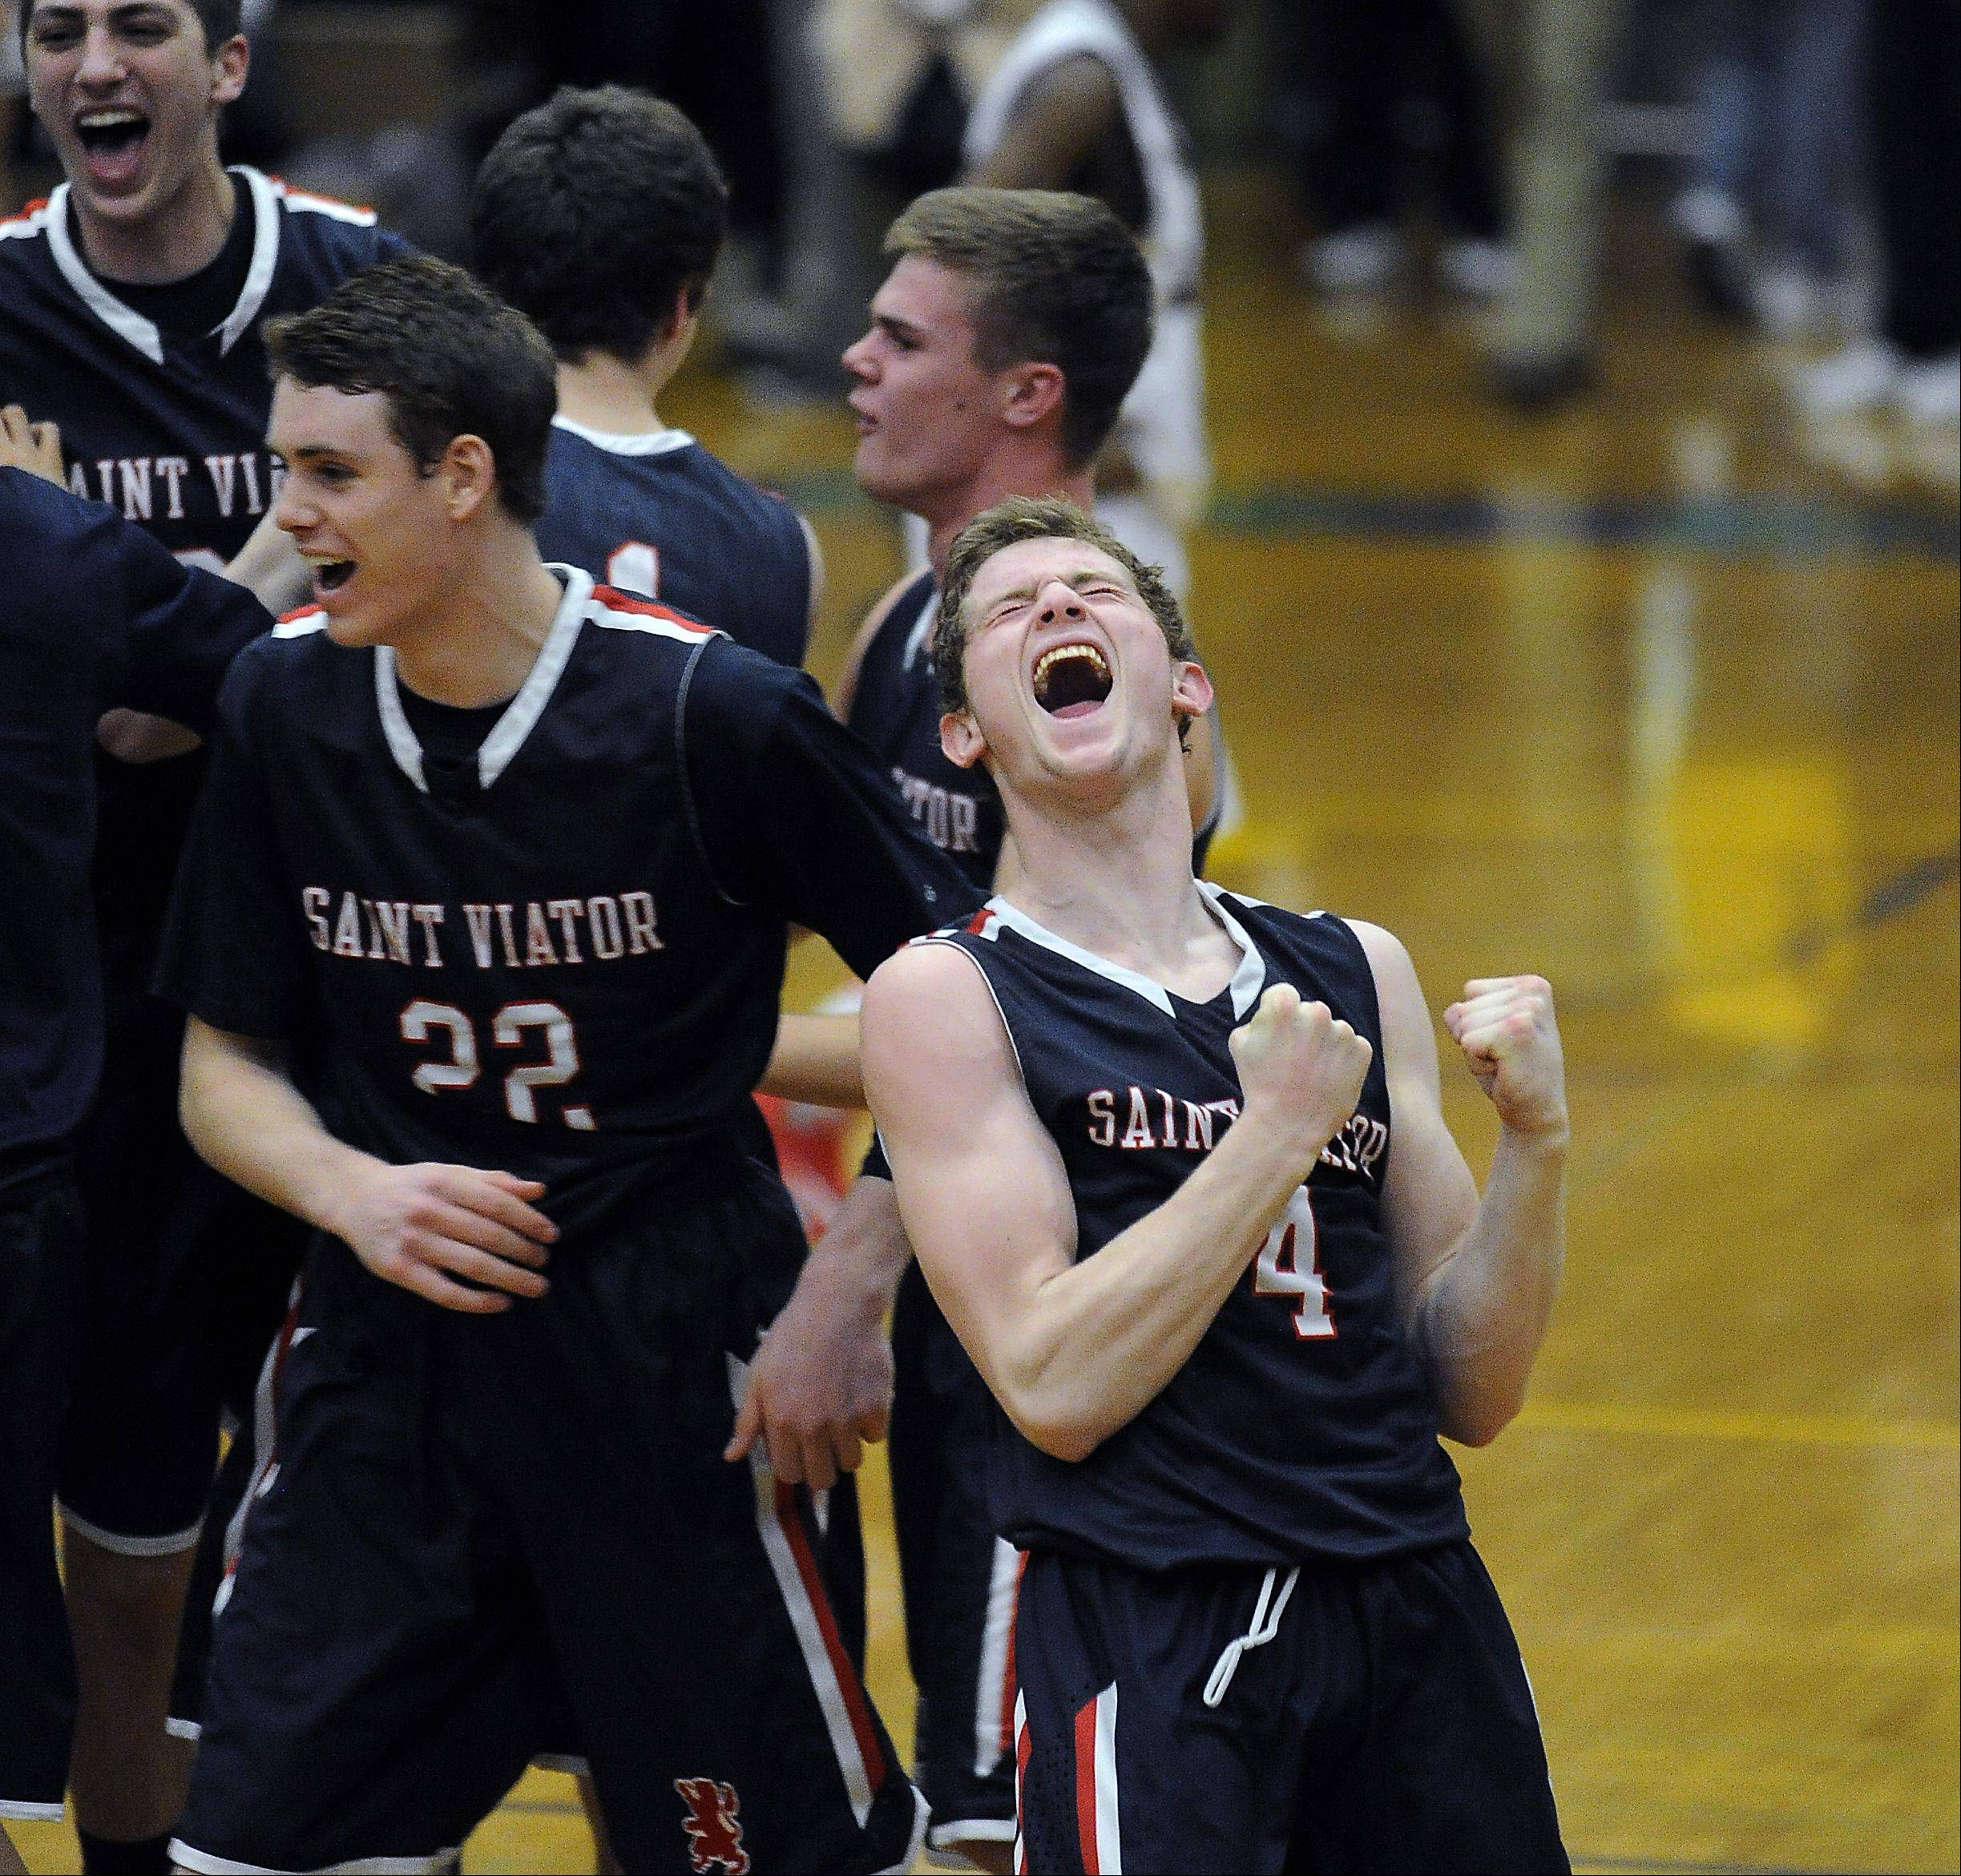 St. Viator's Kevin Hammarlund celebrates their victory over Zion-Benton in the Class 4A Waukegan sectional semifinal basketball game on Thursday.